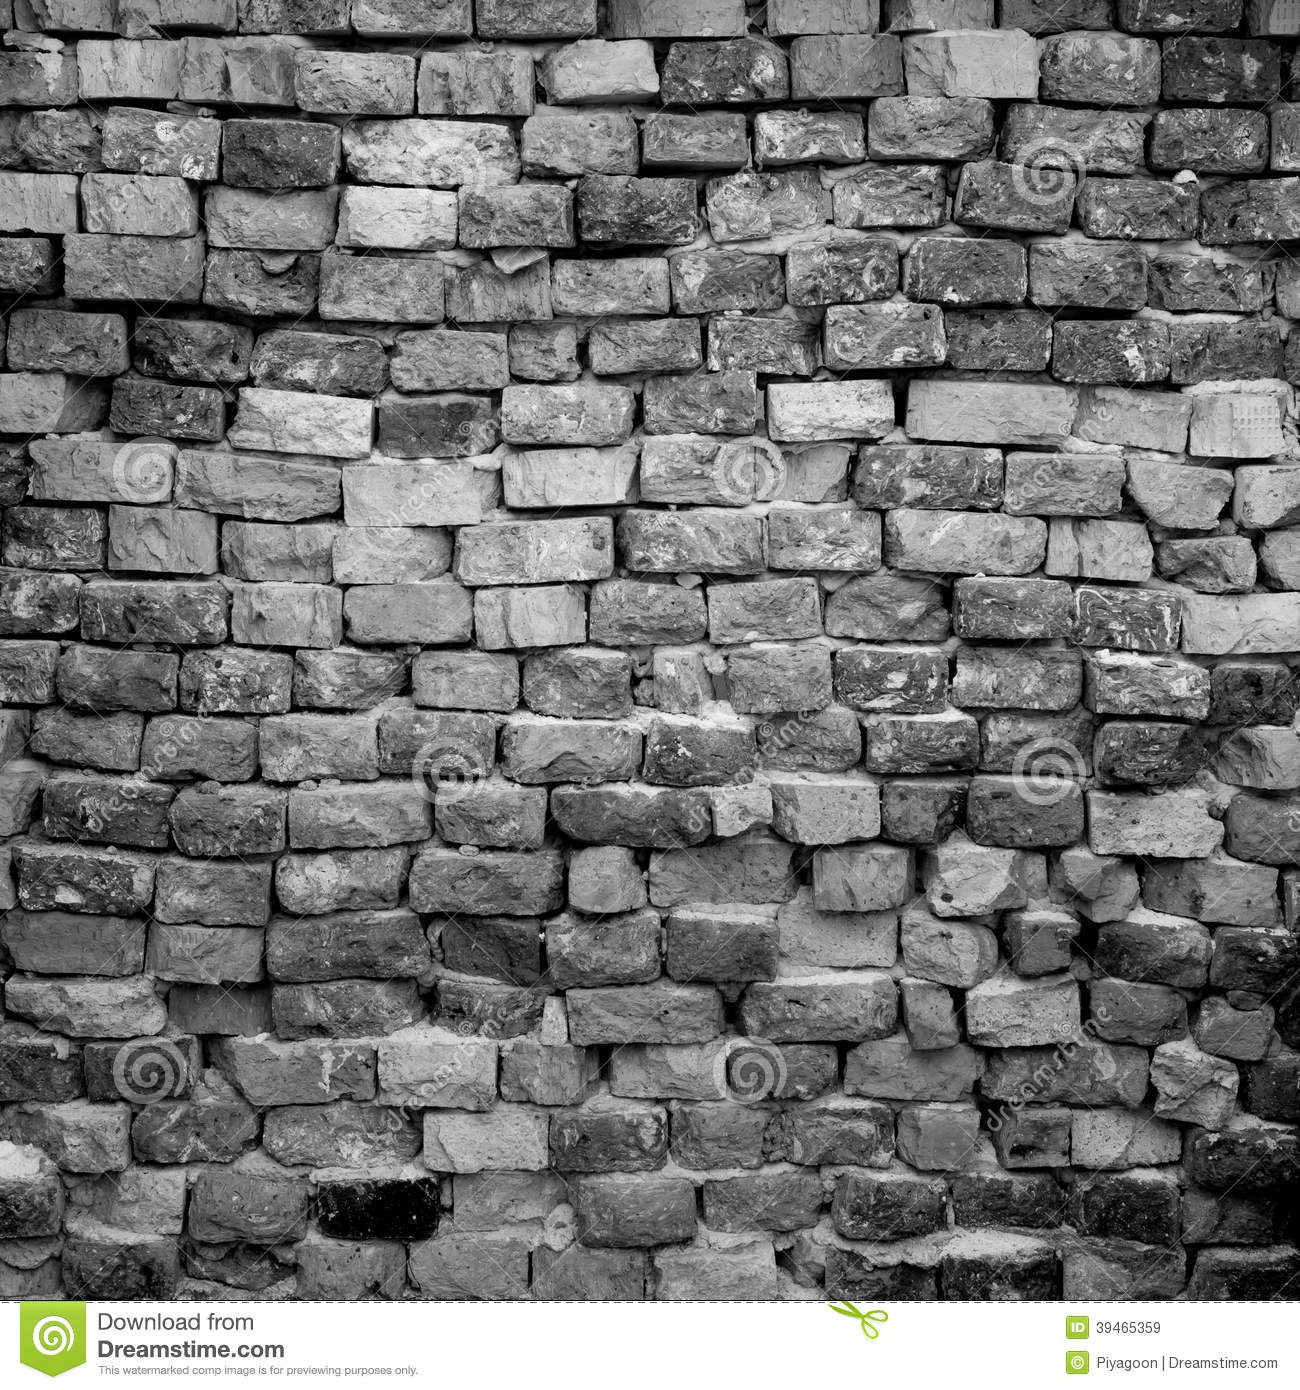 Brick Wall Black And White Wallpaper